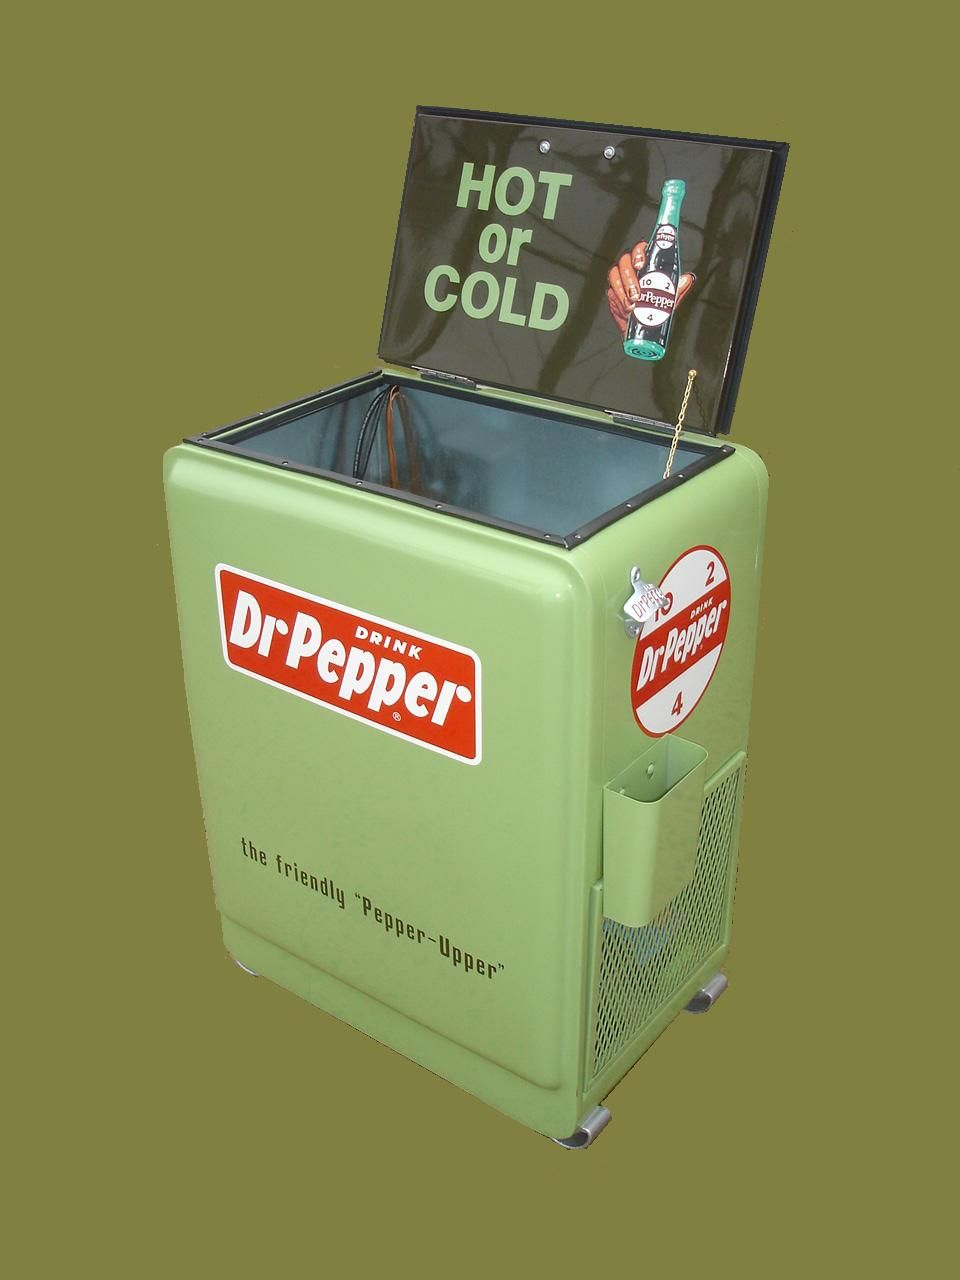 AUTHORIZED SALES AND RESTORATION OF VINTAGE SODA MACHINES